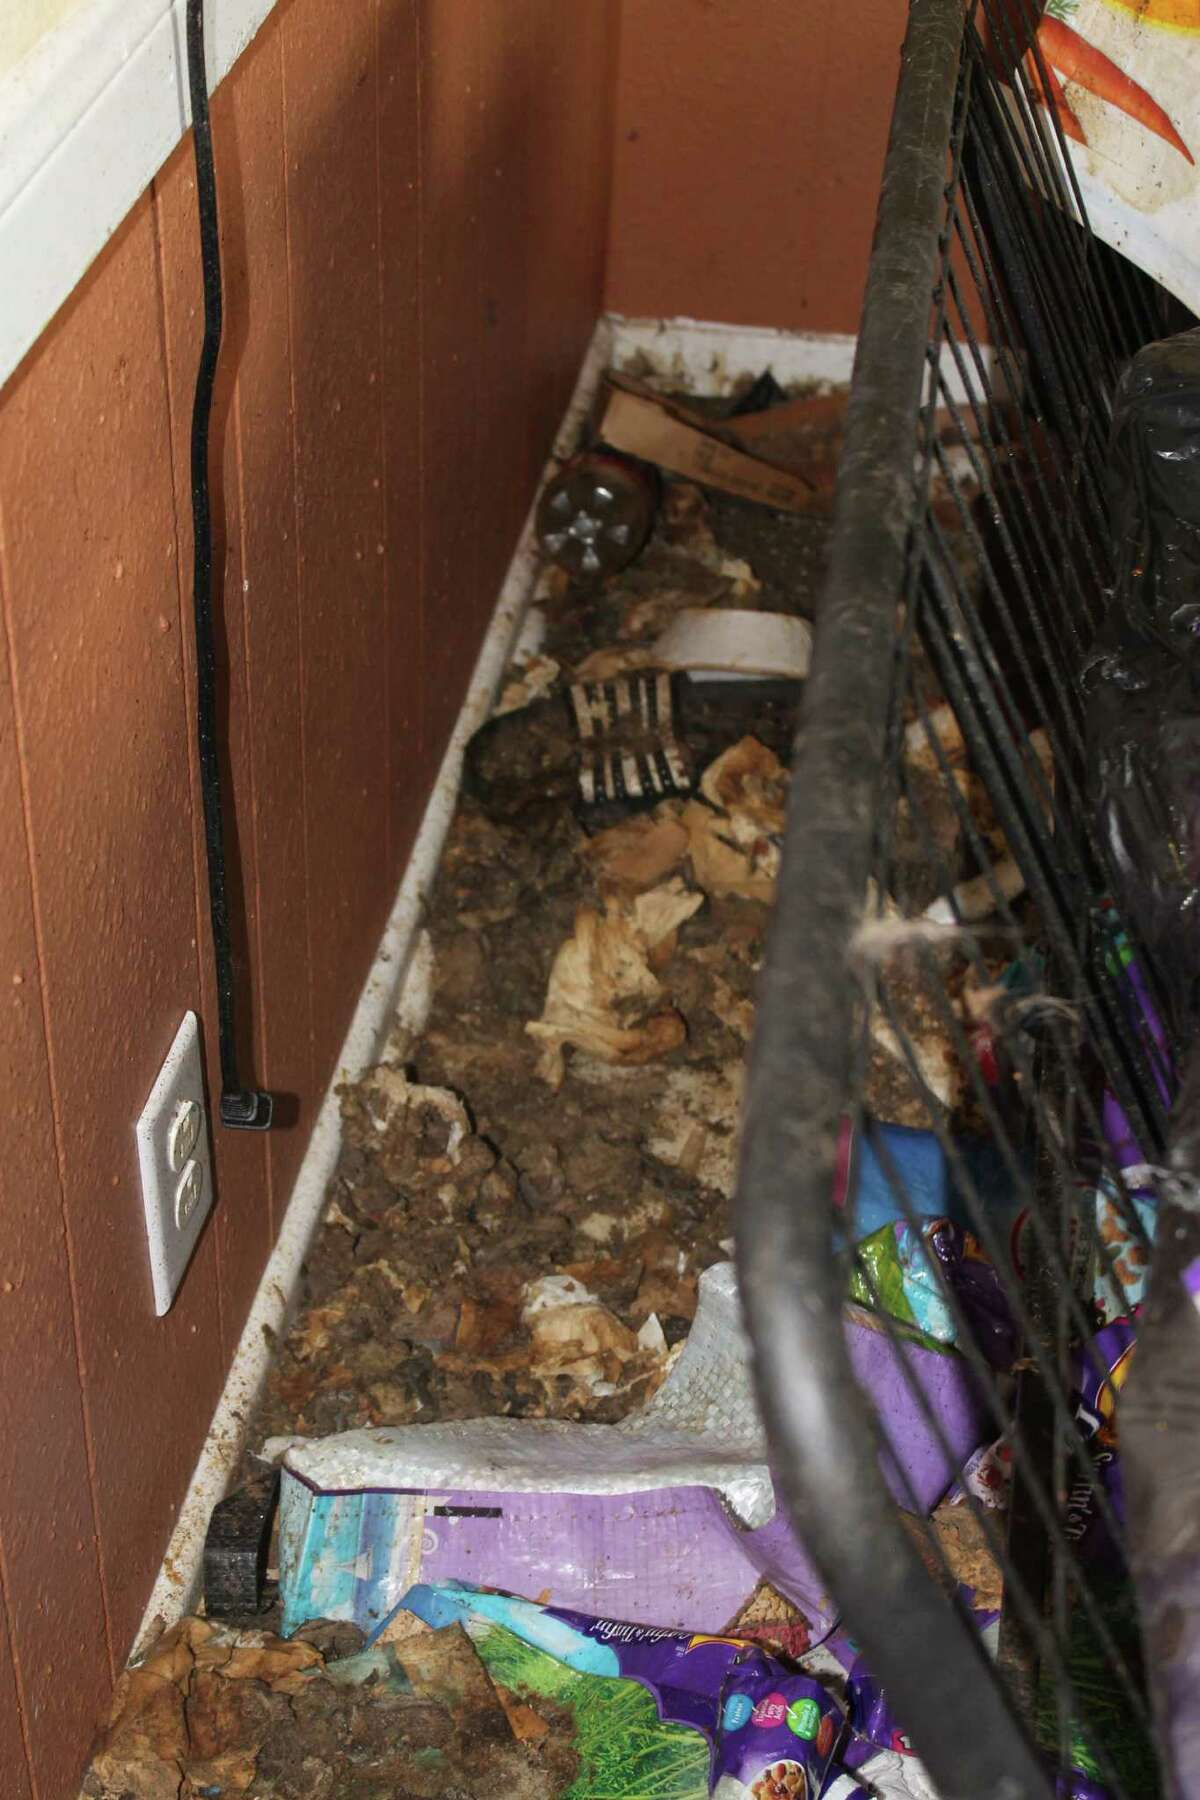 Animal Care Services investigators removed 57 cats from a home on the Northeast Side on Nov. 5 after finding unsanitary conditions inside, according to ACS spokeswoman Lisa Norwood.